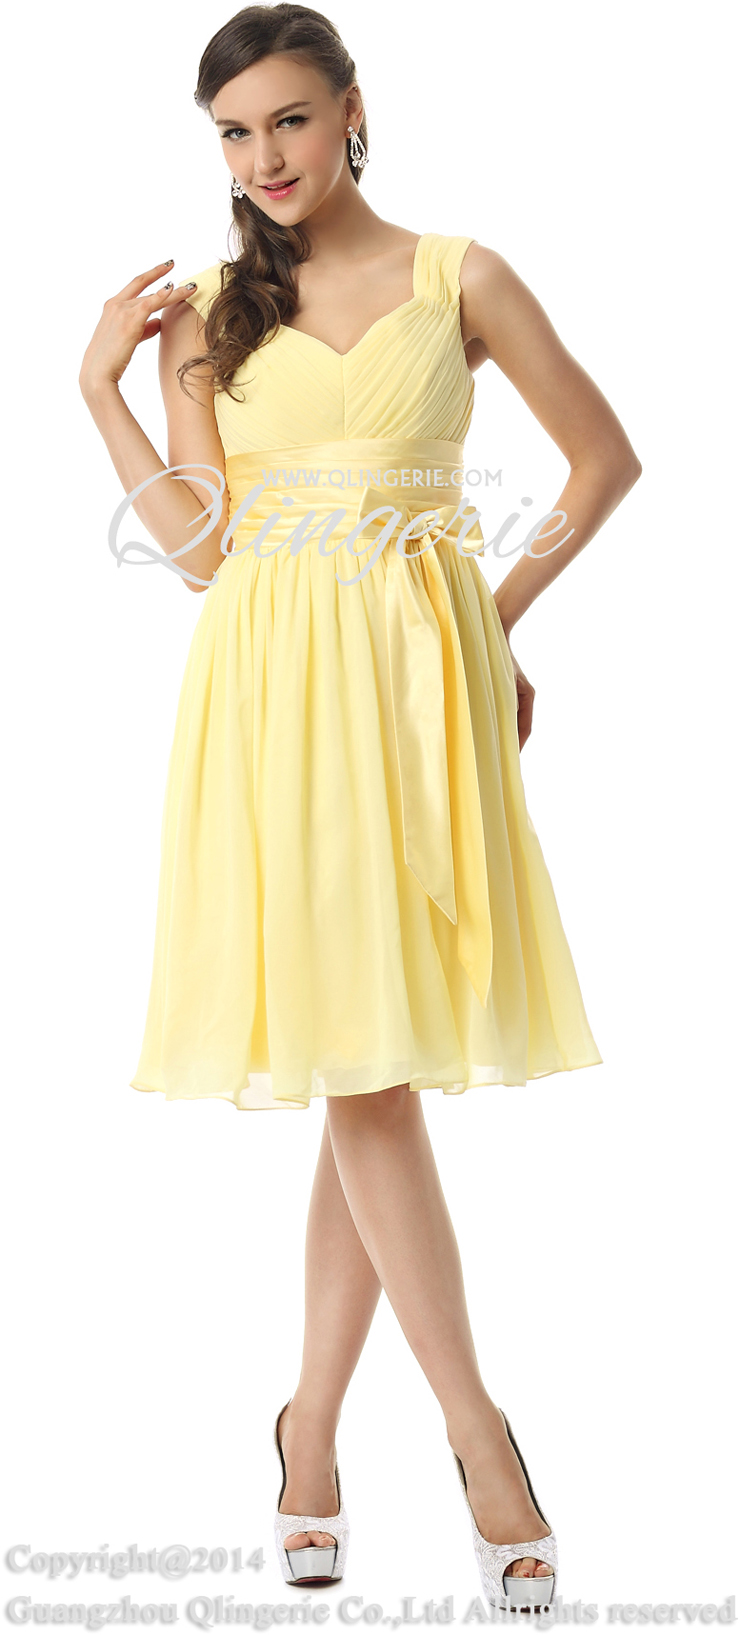 Yellow homecoming dresses are unique look which not everyone can pull off. We showcase a variety of yellow dresses in different styles and hues whether you are looking for a more subtle pastel yellow or a vibrant citrus yellow.